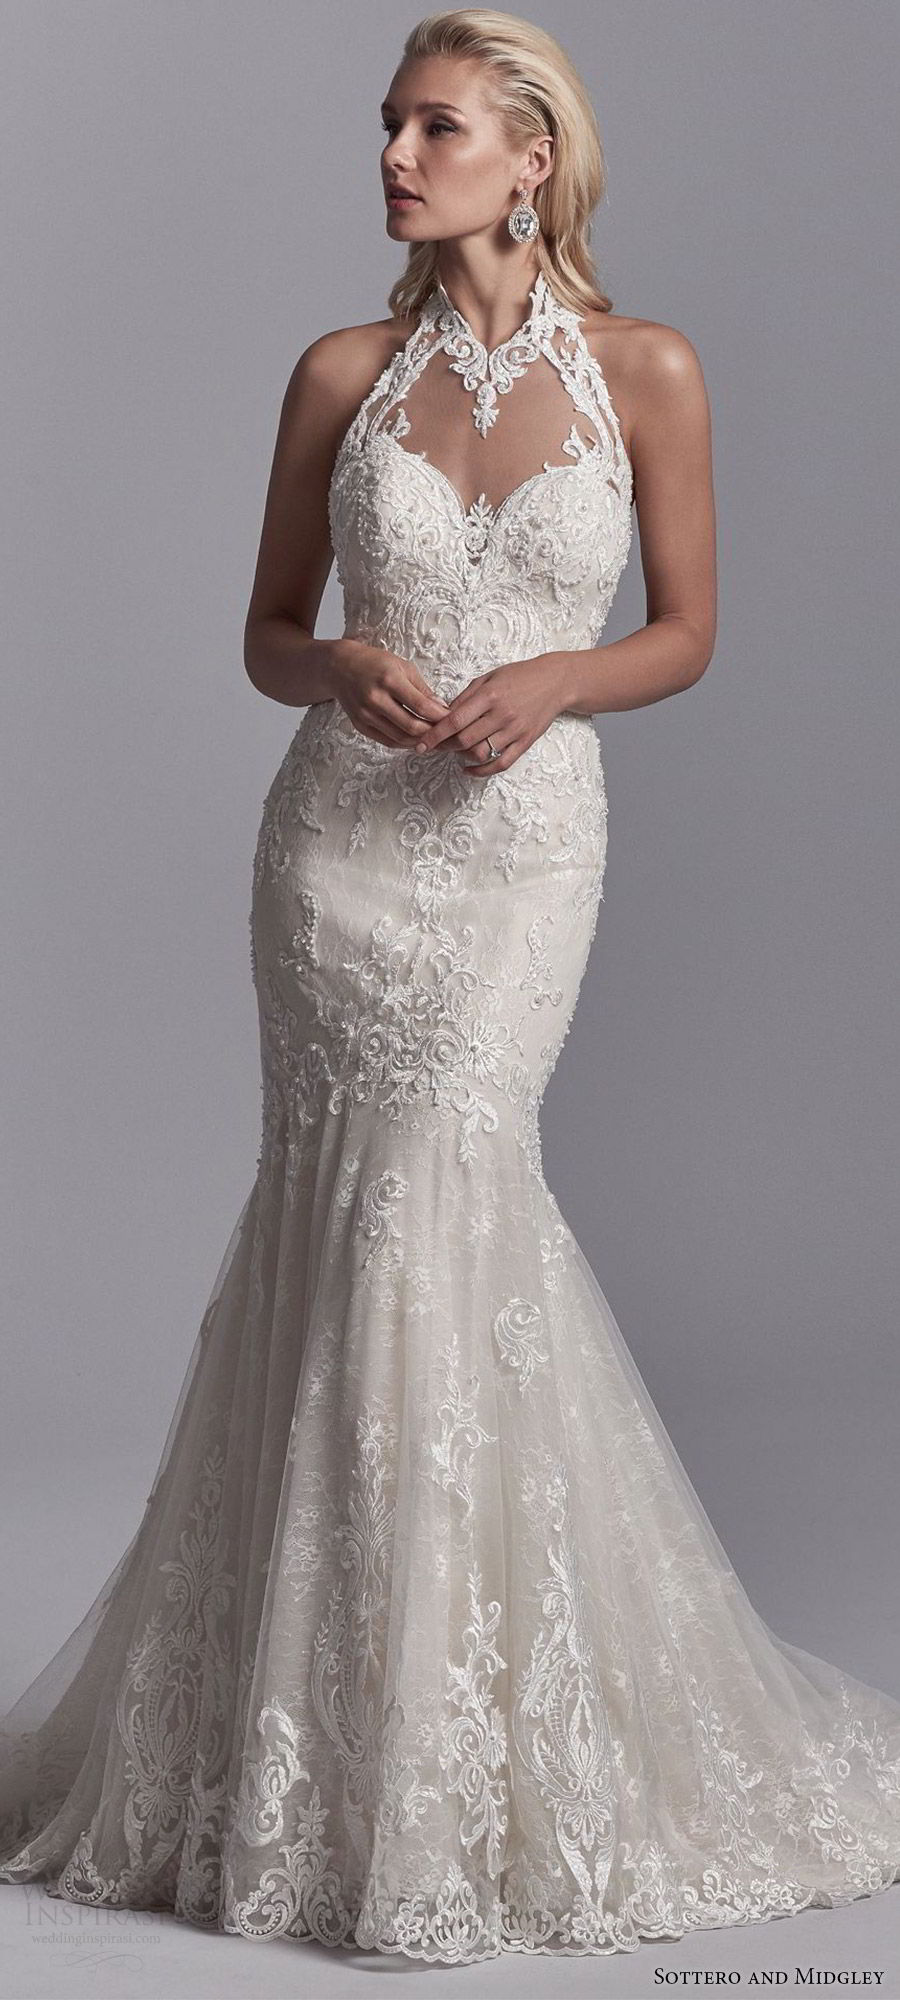 2018 Wedding Dress Trends To Love Part 1 Silhouettes And